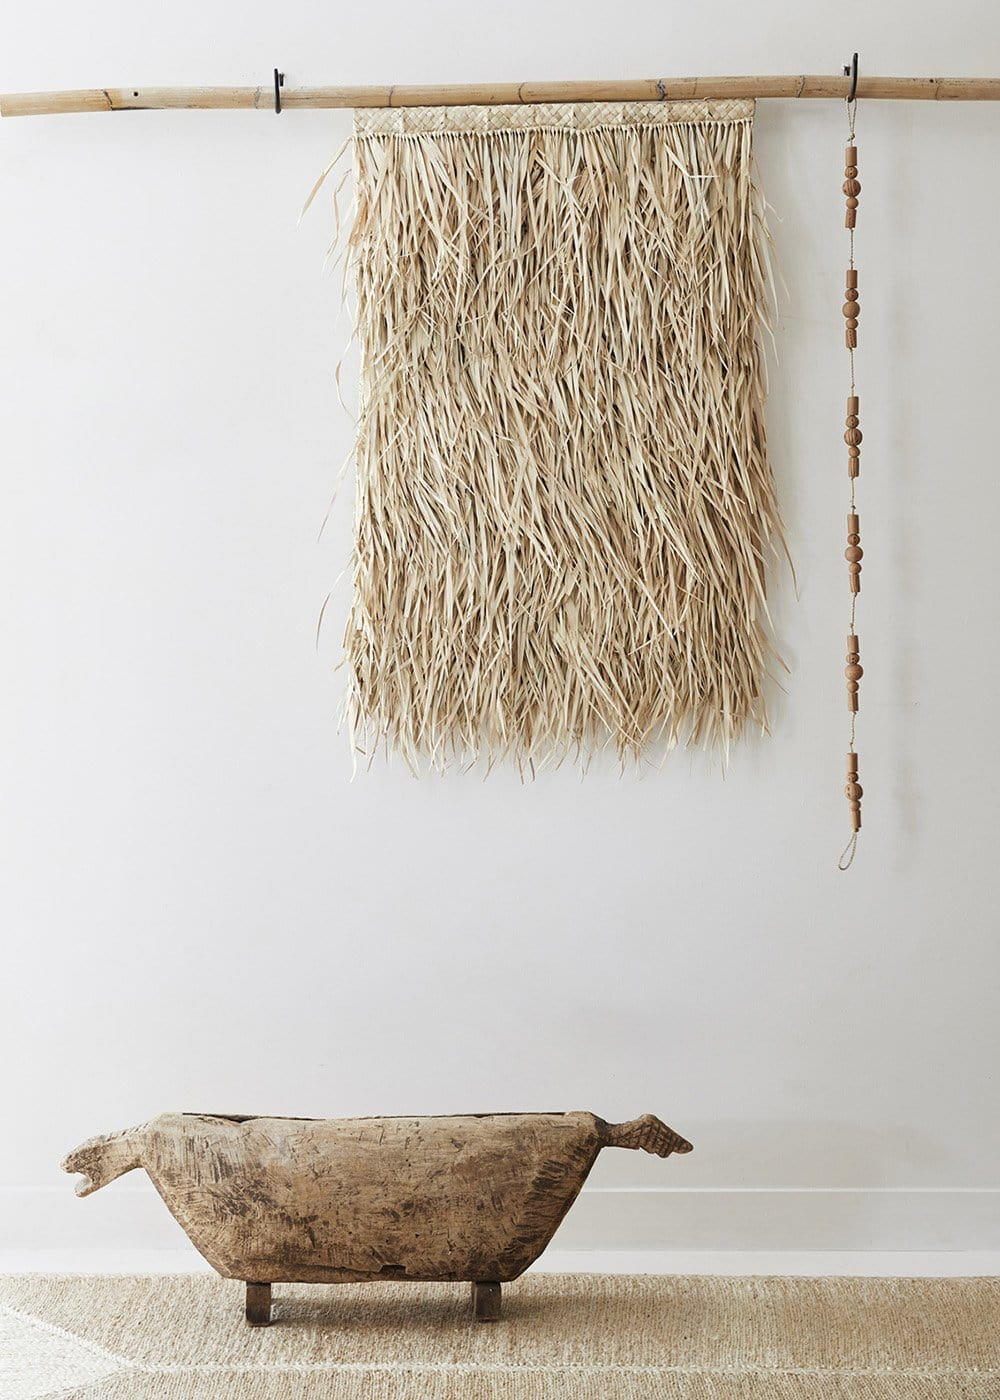 BEHIND THE DESIGN | New palm leaf wall hangings